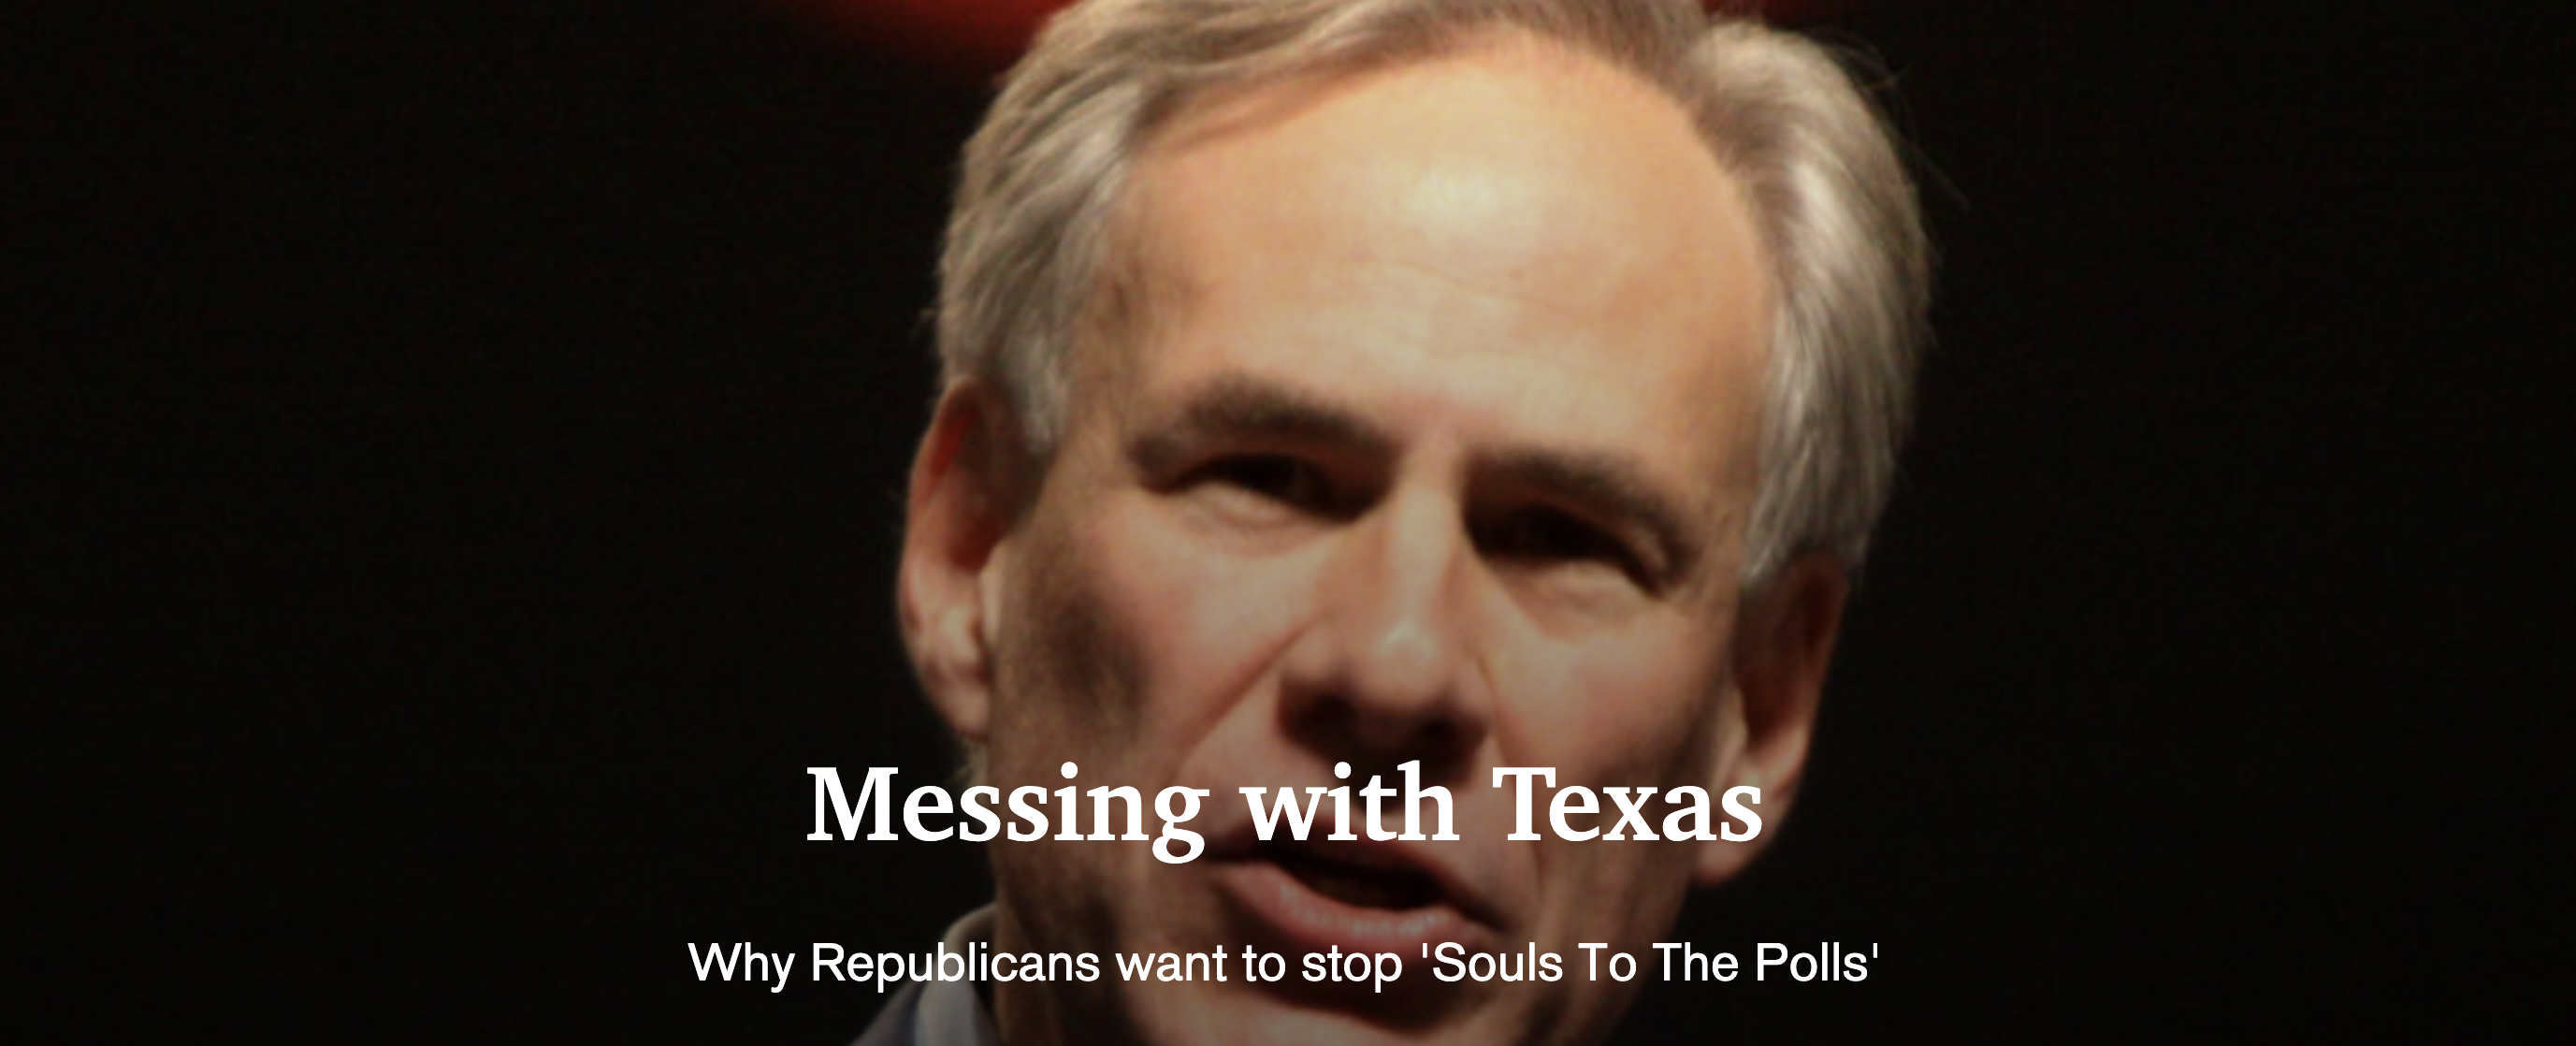 Mapping Republican voter suppression in Texas